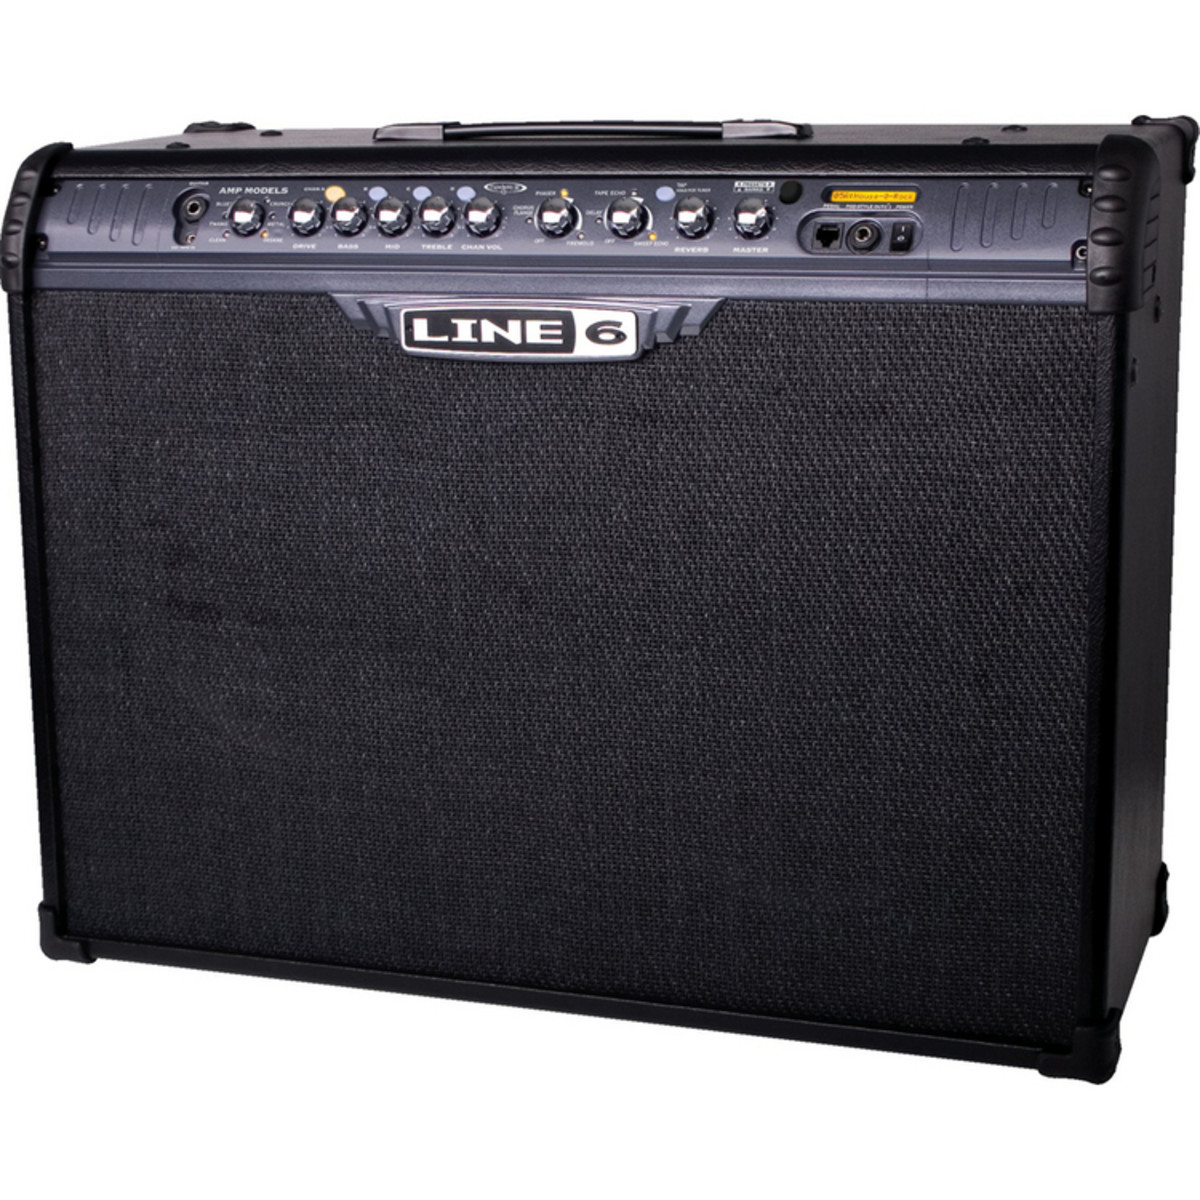 line 6 spider iii 150 watt combo guitar amp at gear4music rh gear4music com line 6 spider 3 150 manual line 6 spider 3 75 manual